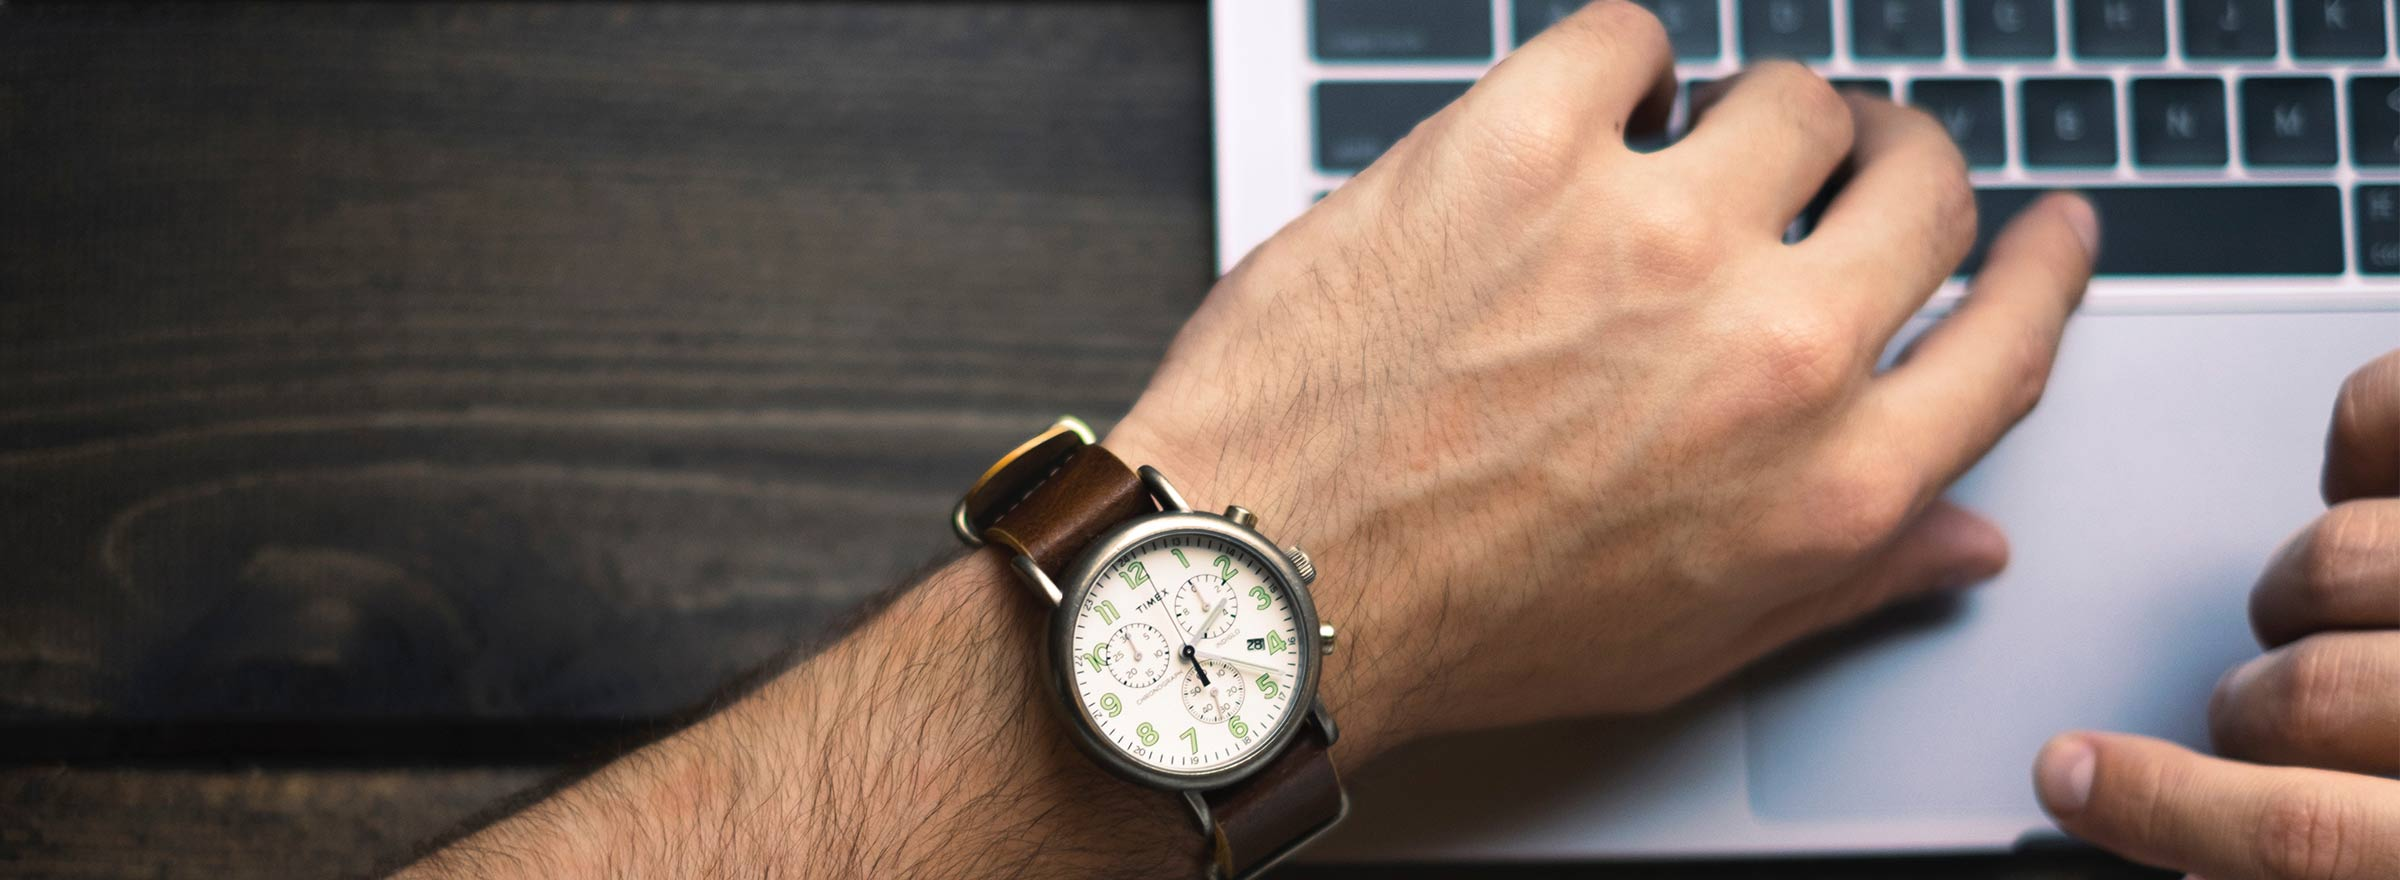 person looking at a wristwatch on a laptop keyboard, representing how nonprofits can save time and money with cloud integrations